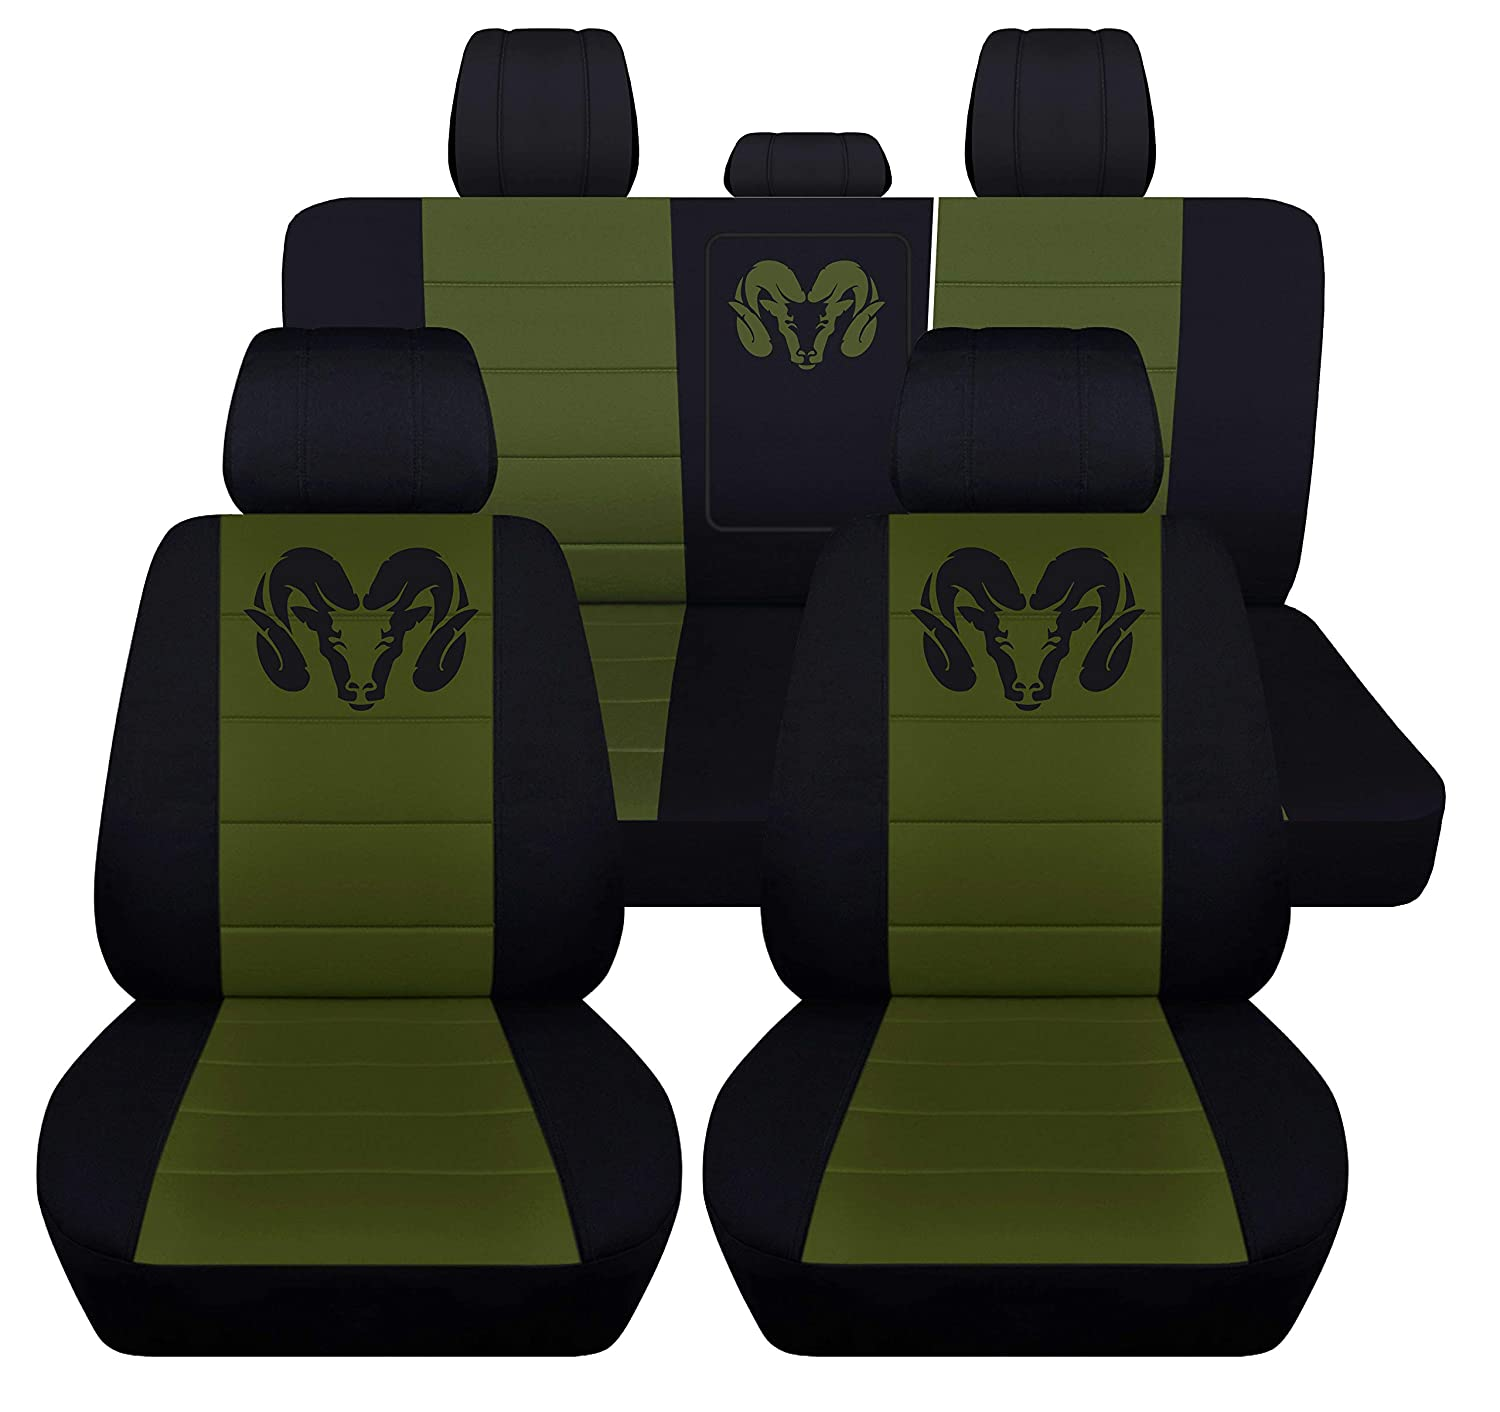 40 20 40 Front and Rear Seat Covers for 2013 to 2018 Dodge Ram 22 Color Options (Solid Rear Bench, Black Charcoal) Designcovers